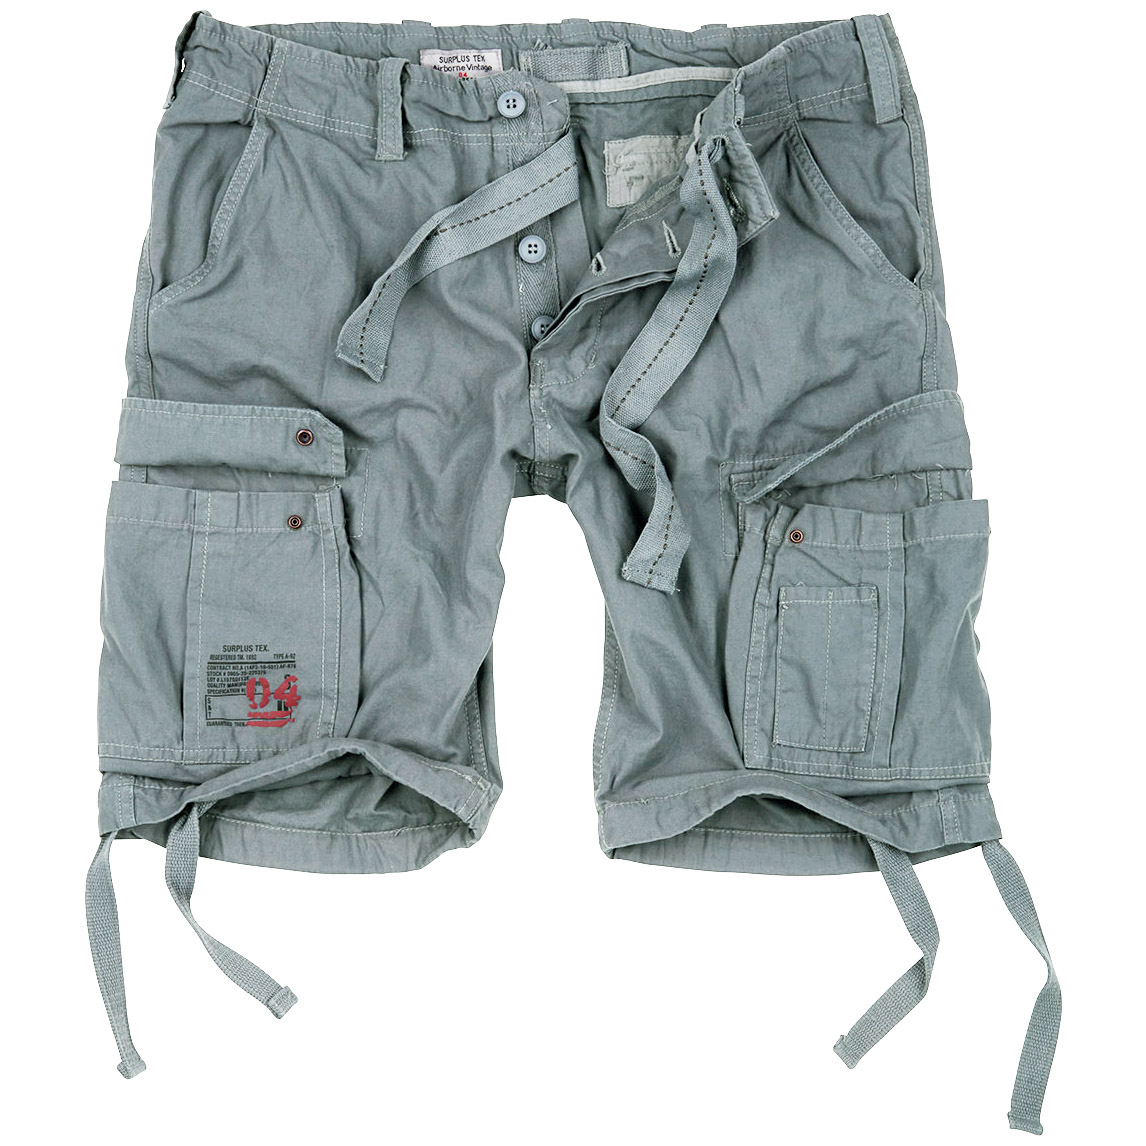 SURPLUS VINTAGE CARGO SHORTS MENS ARMY STYLE COMBAT WASHED COTTON FISHING PANTS